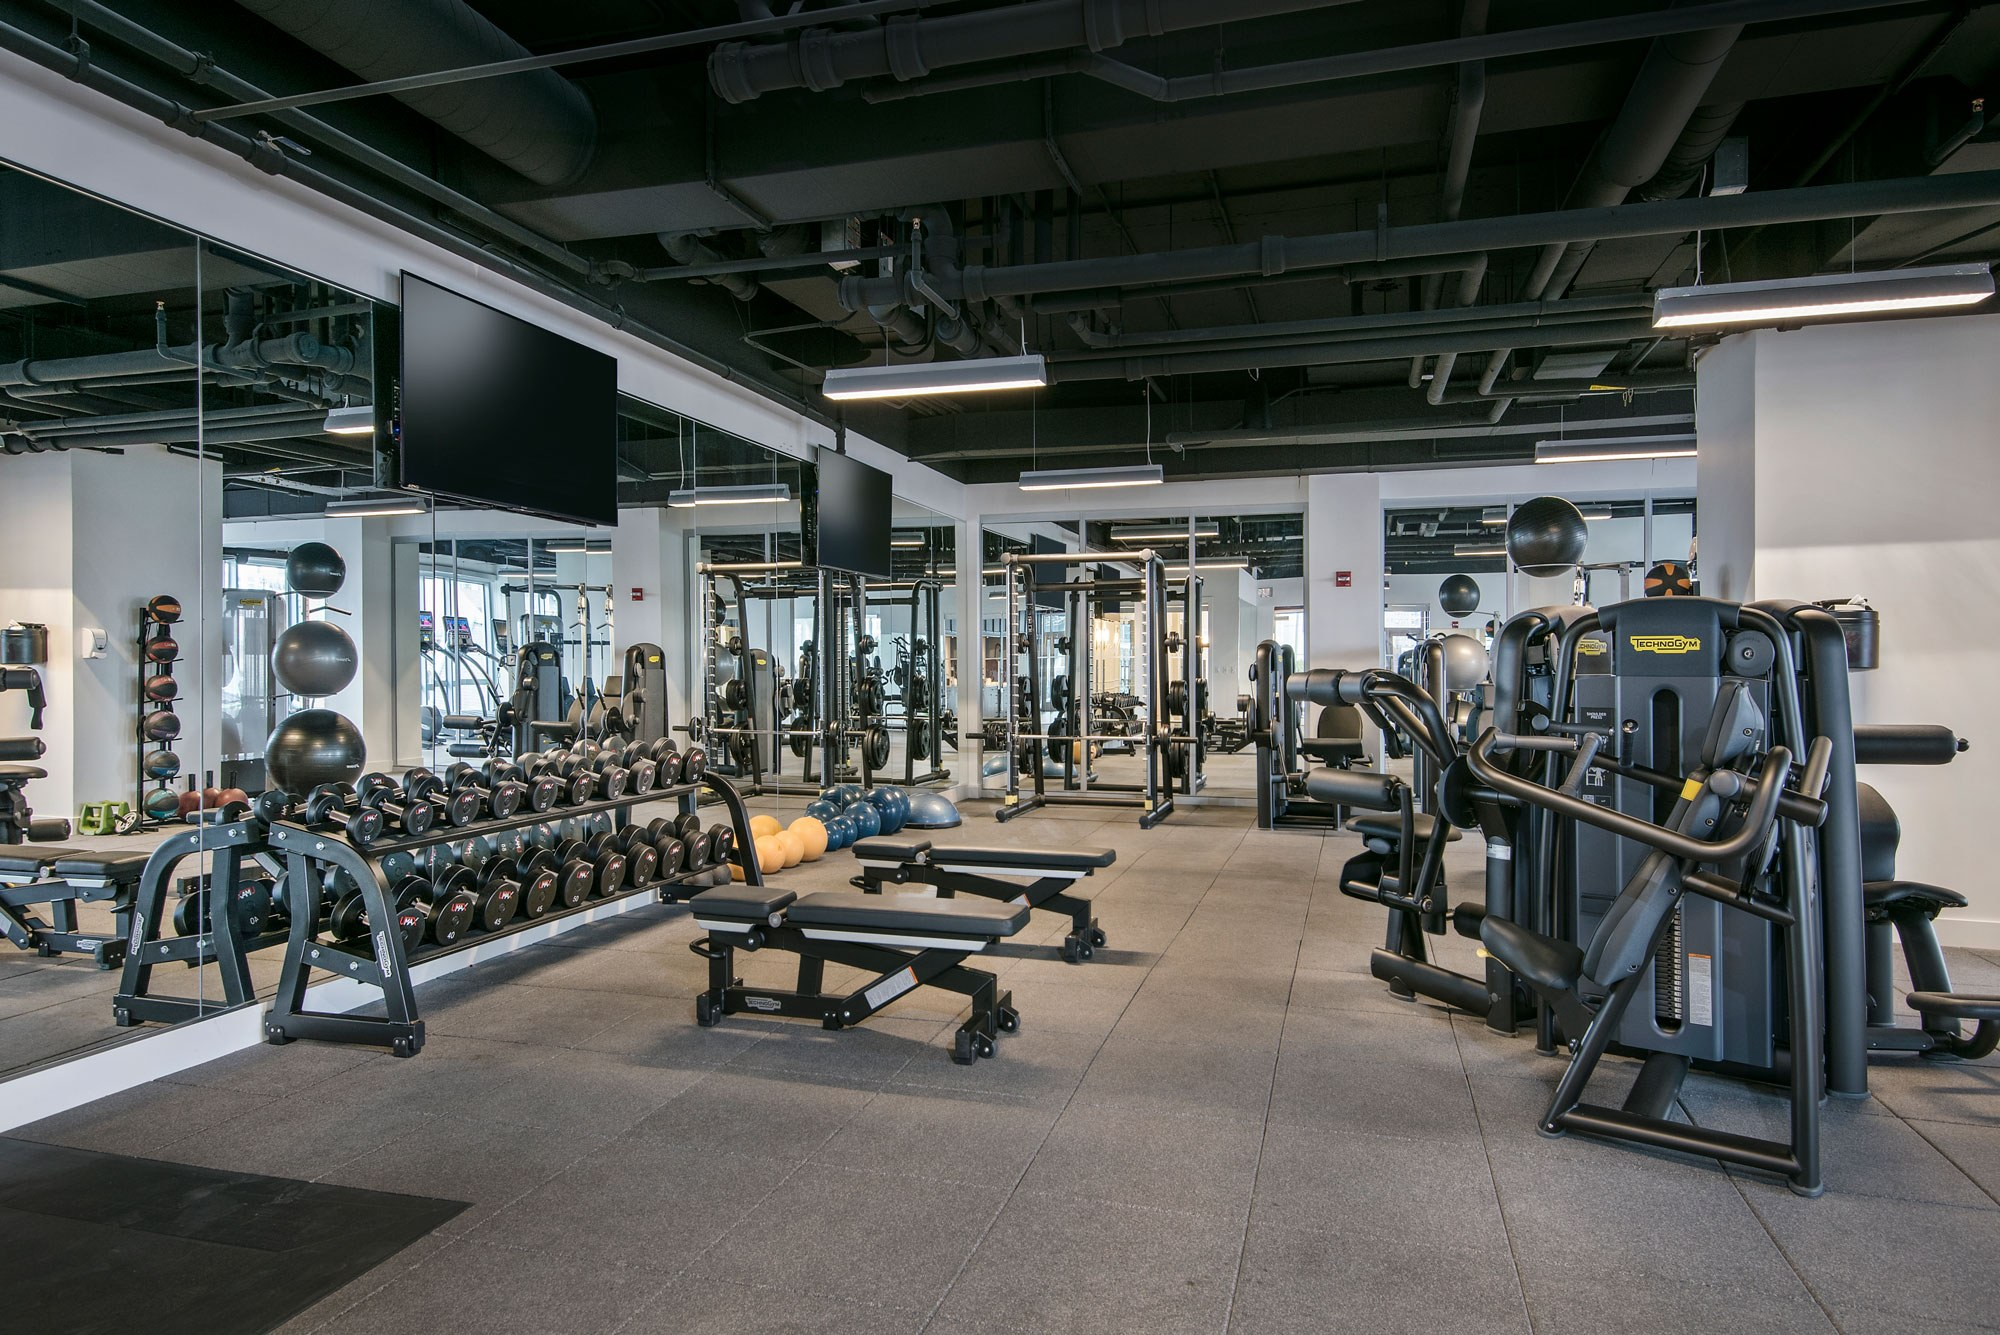 Two West Delaware Fitness